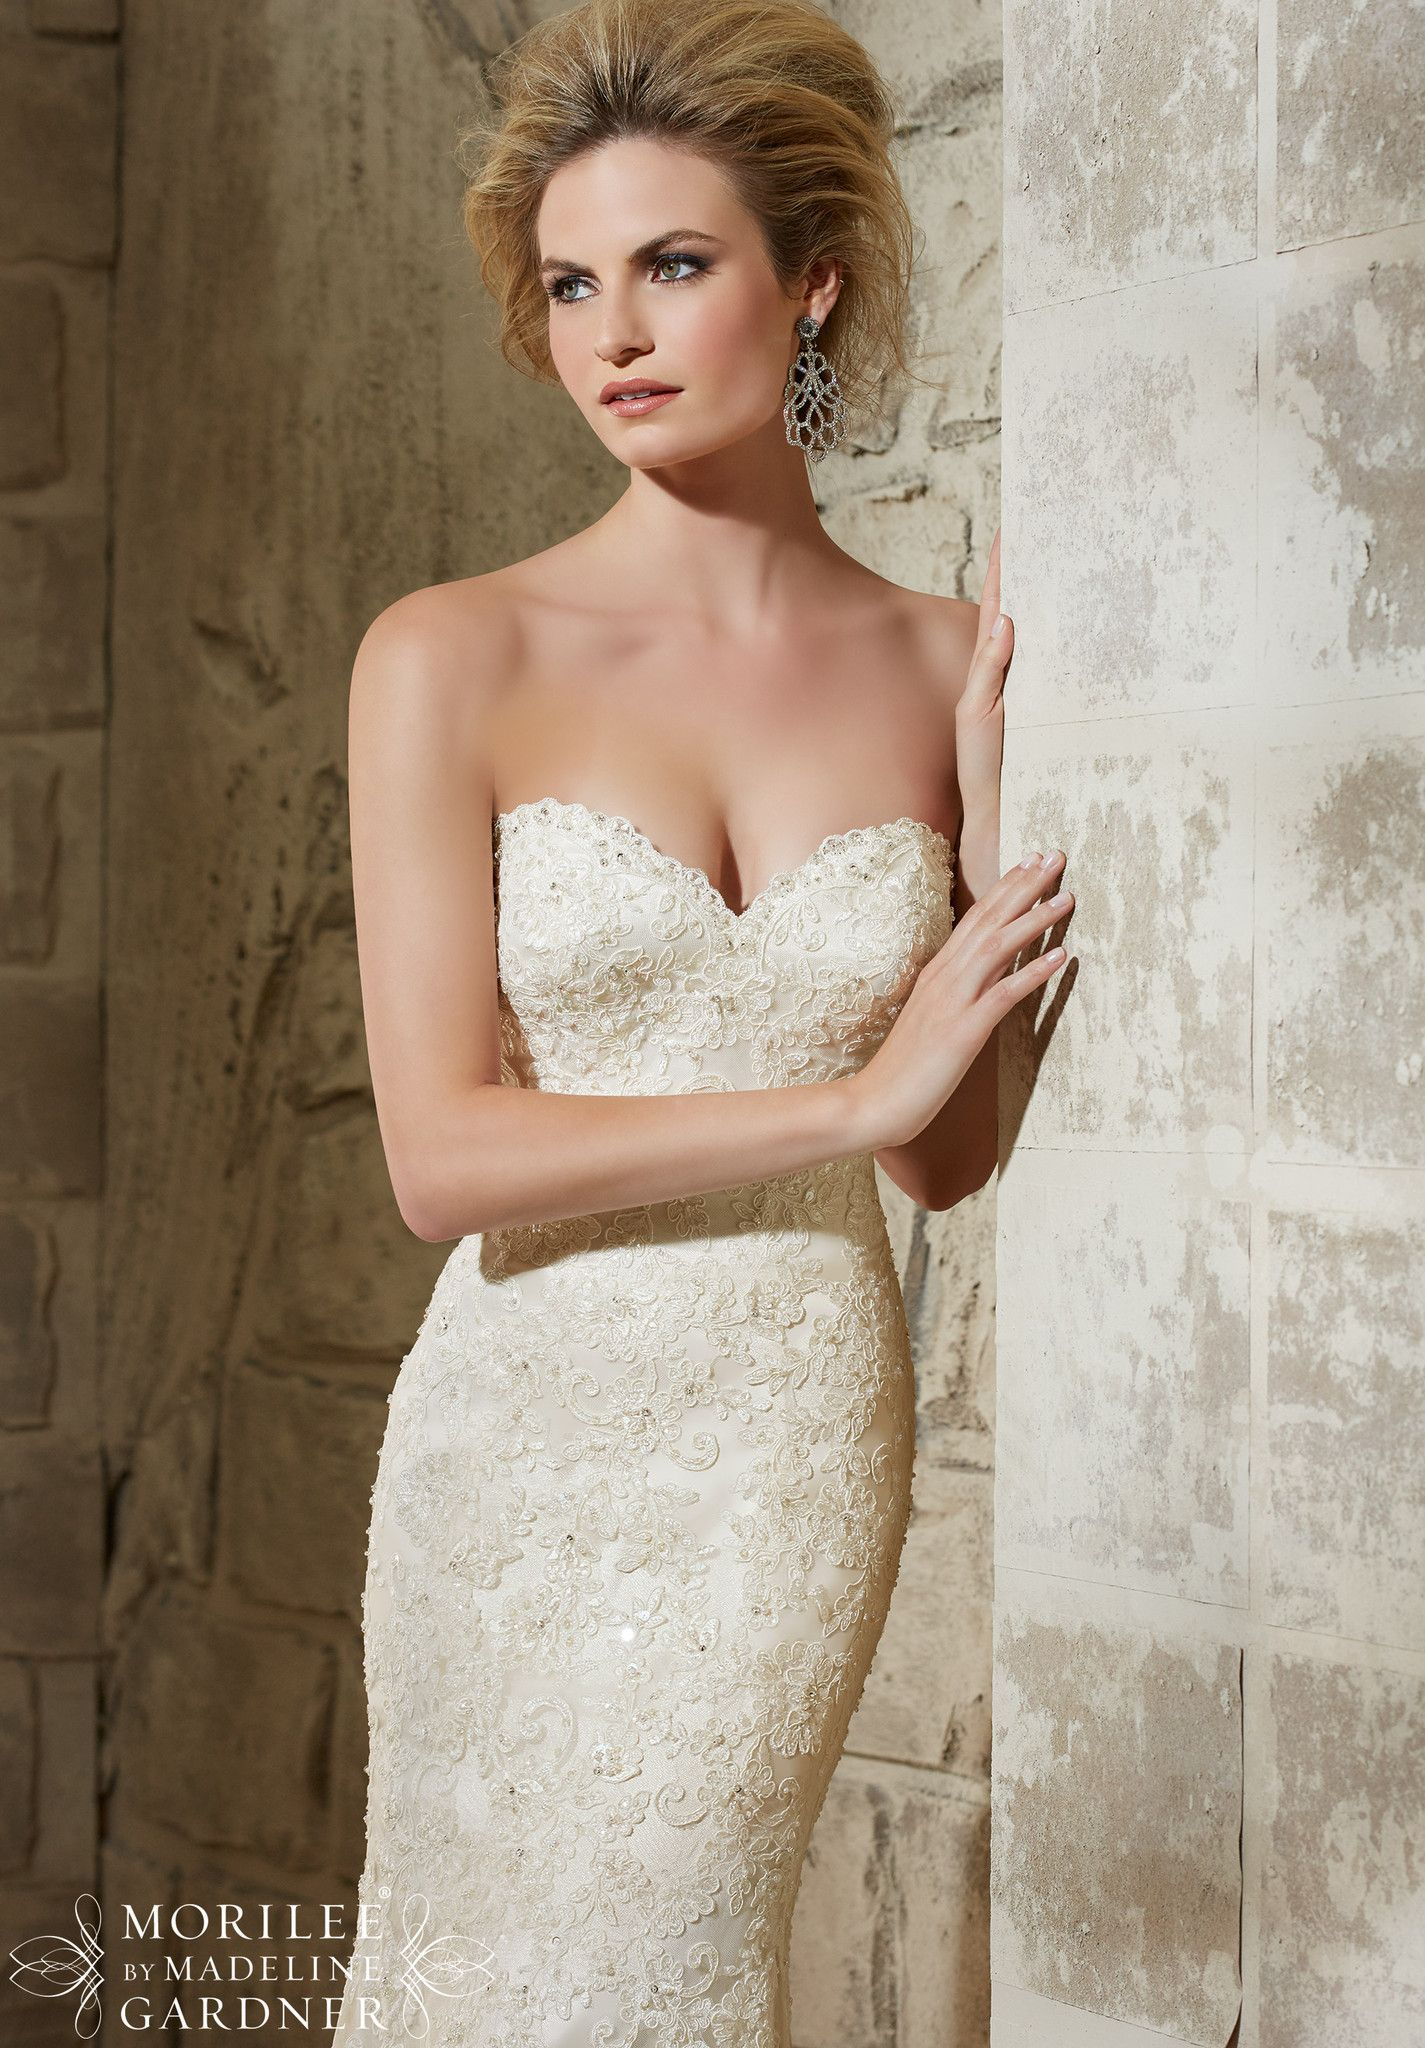 Mori lee wedding dresses discontinued styles  Mori Lee  Alençon Lace on Net Over Soft Satin with Crystal Beading